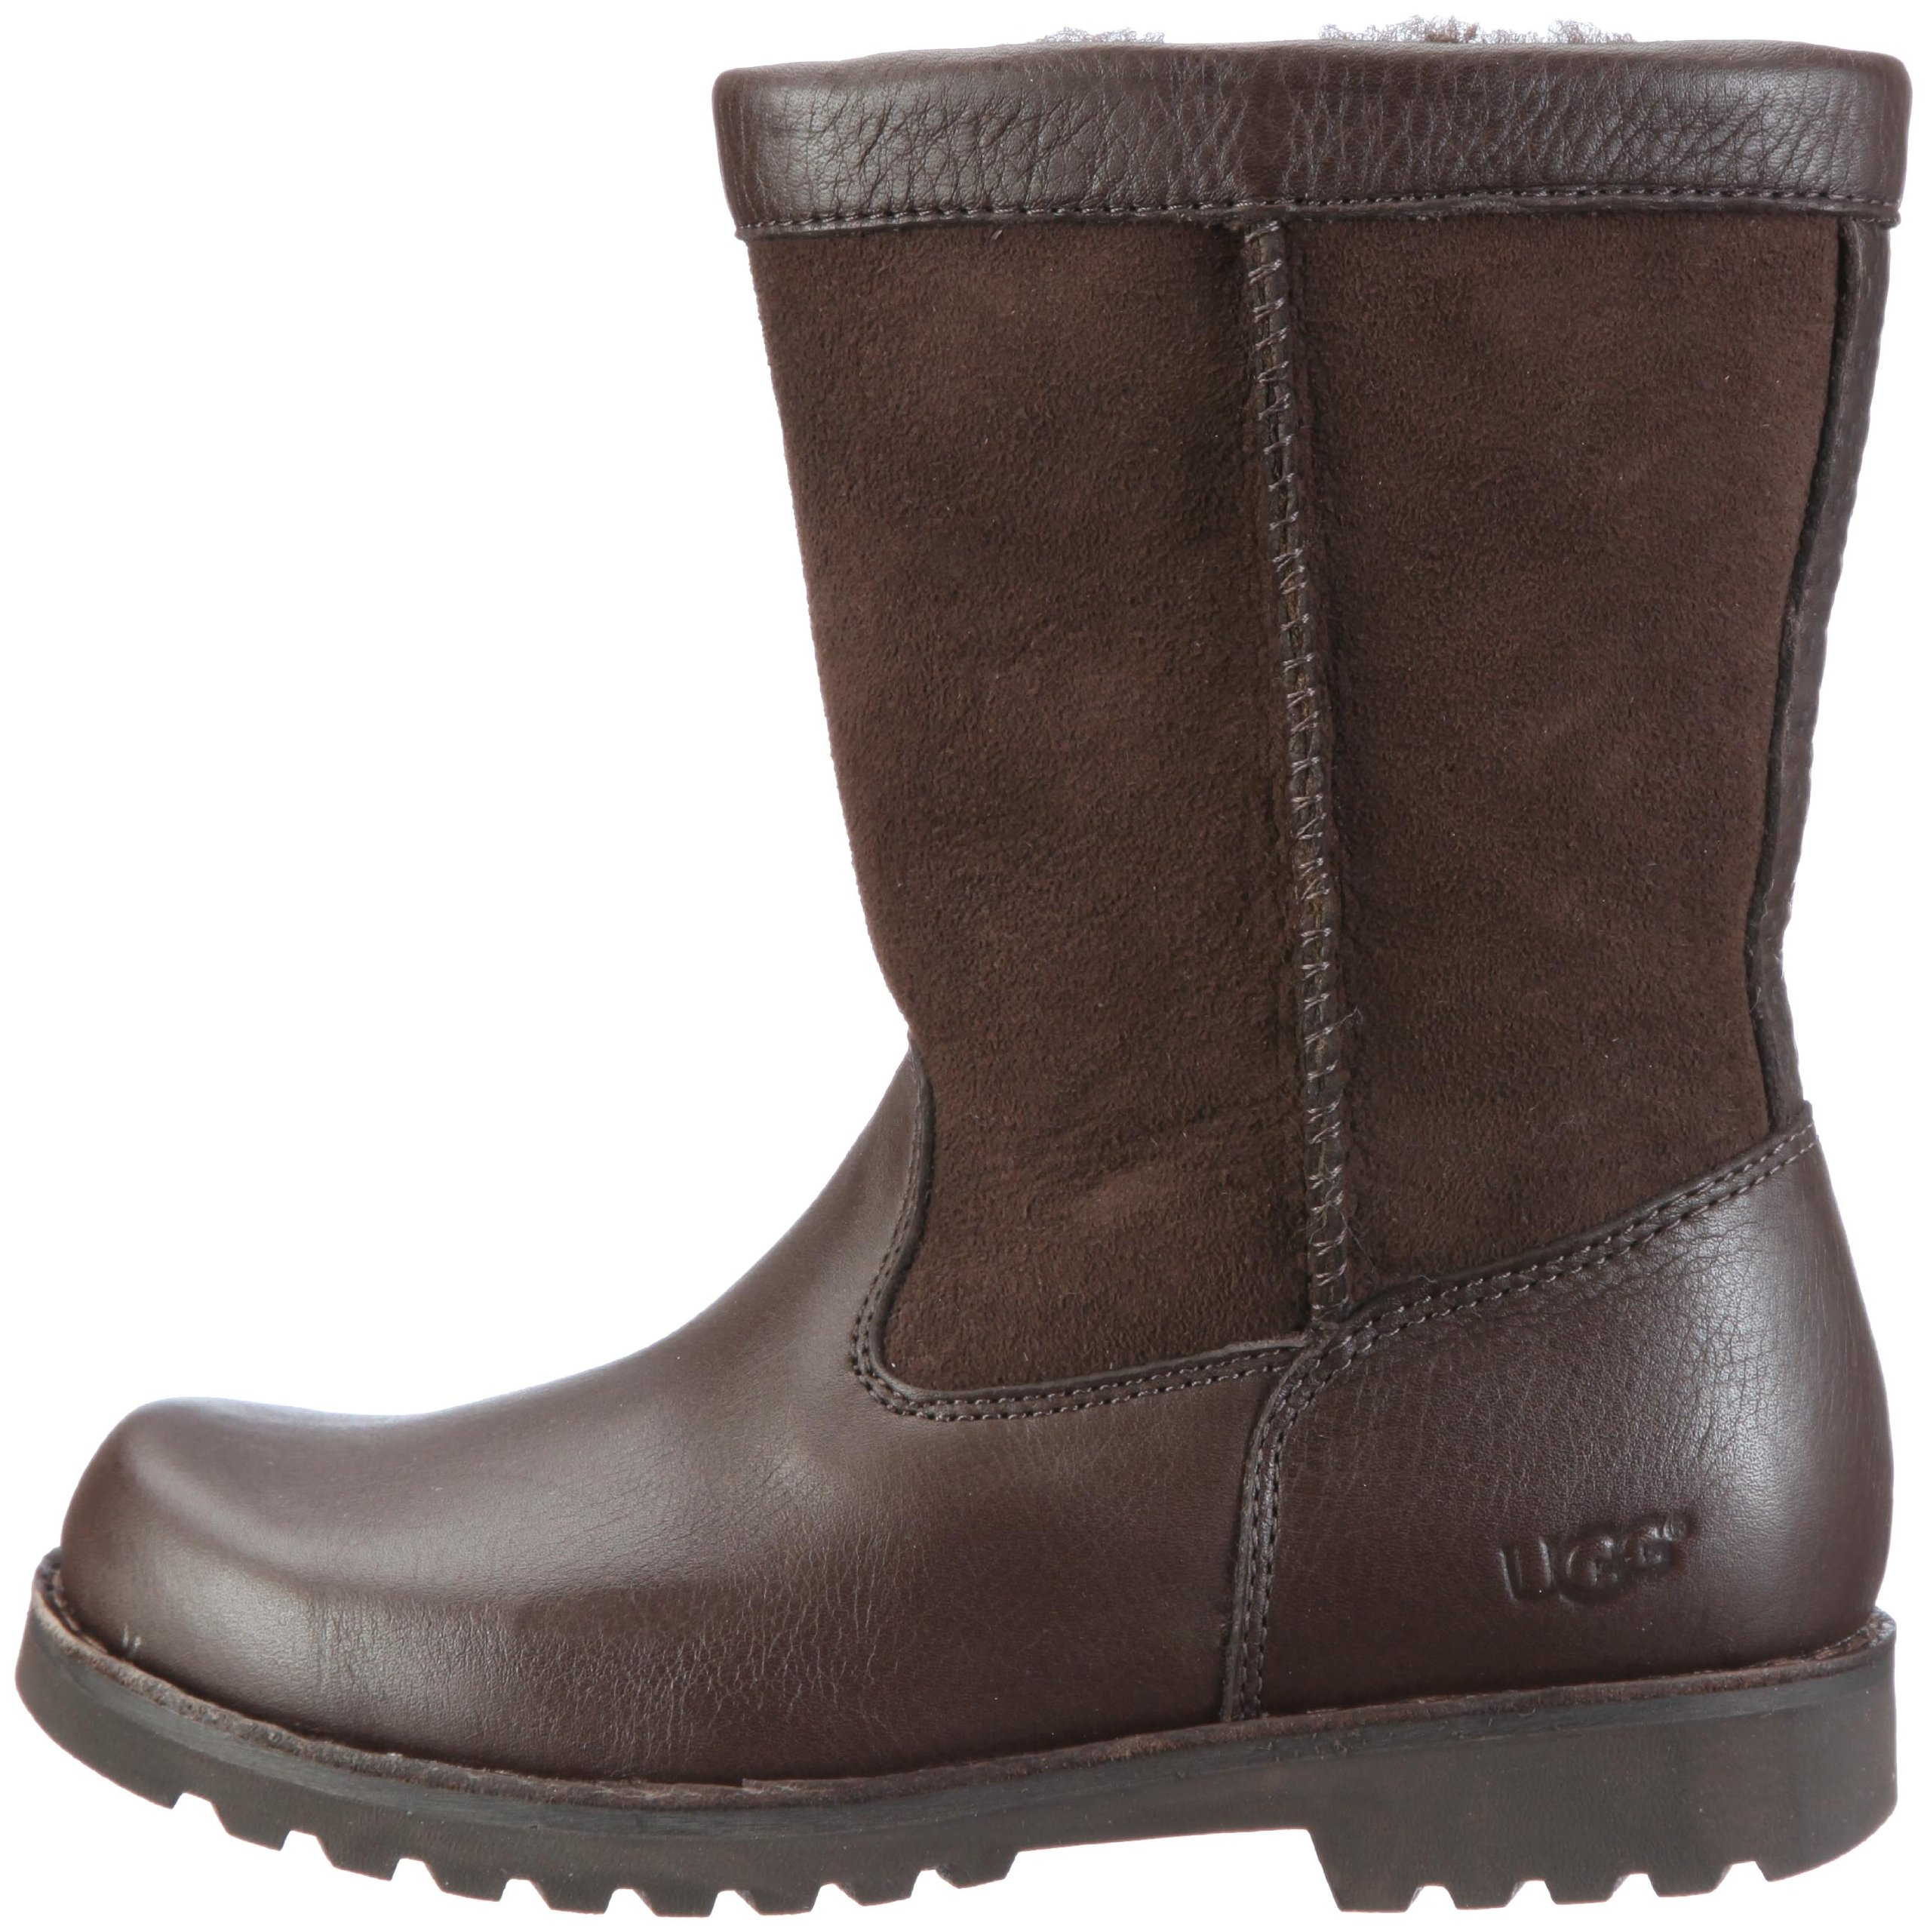 UGG Australia Children's Riverton Suede Boots,Chocolate/Chocolate,5 Child US by UGG (Image #5)